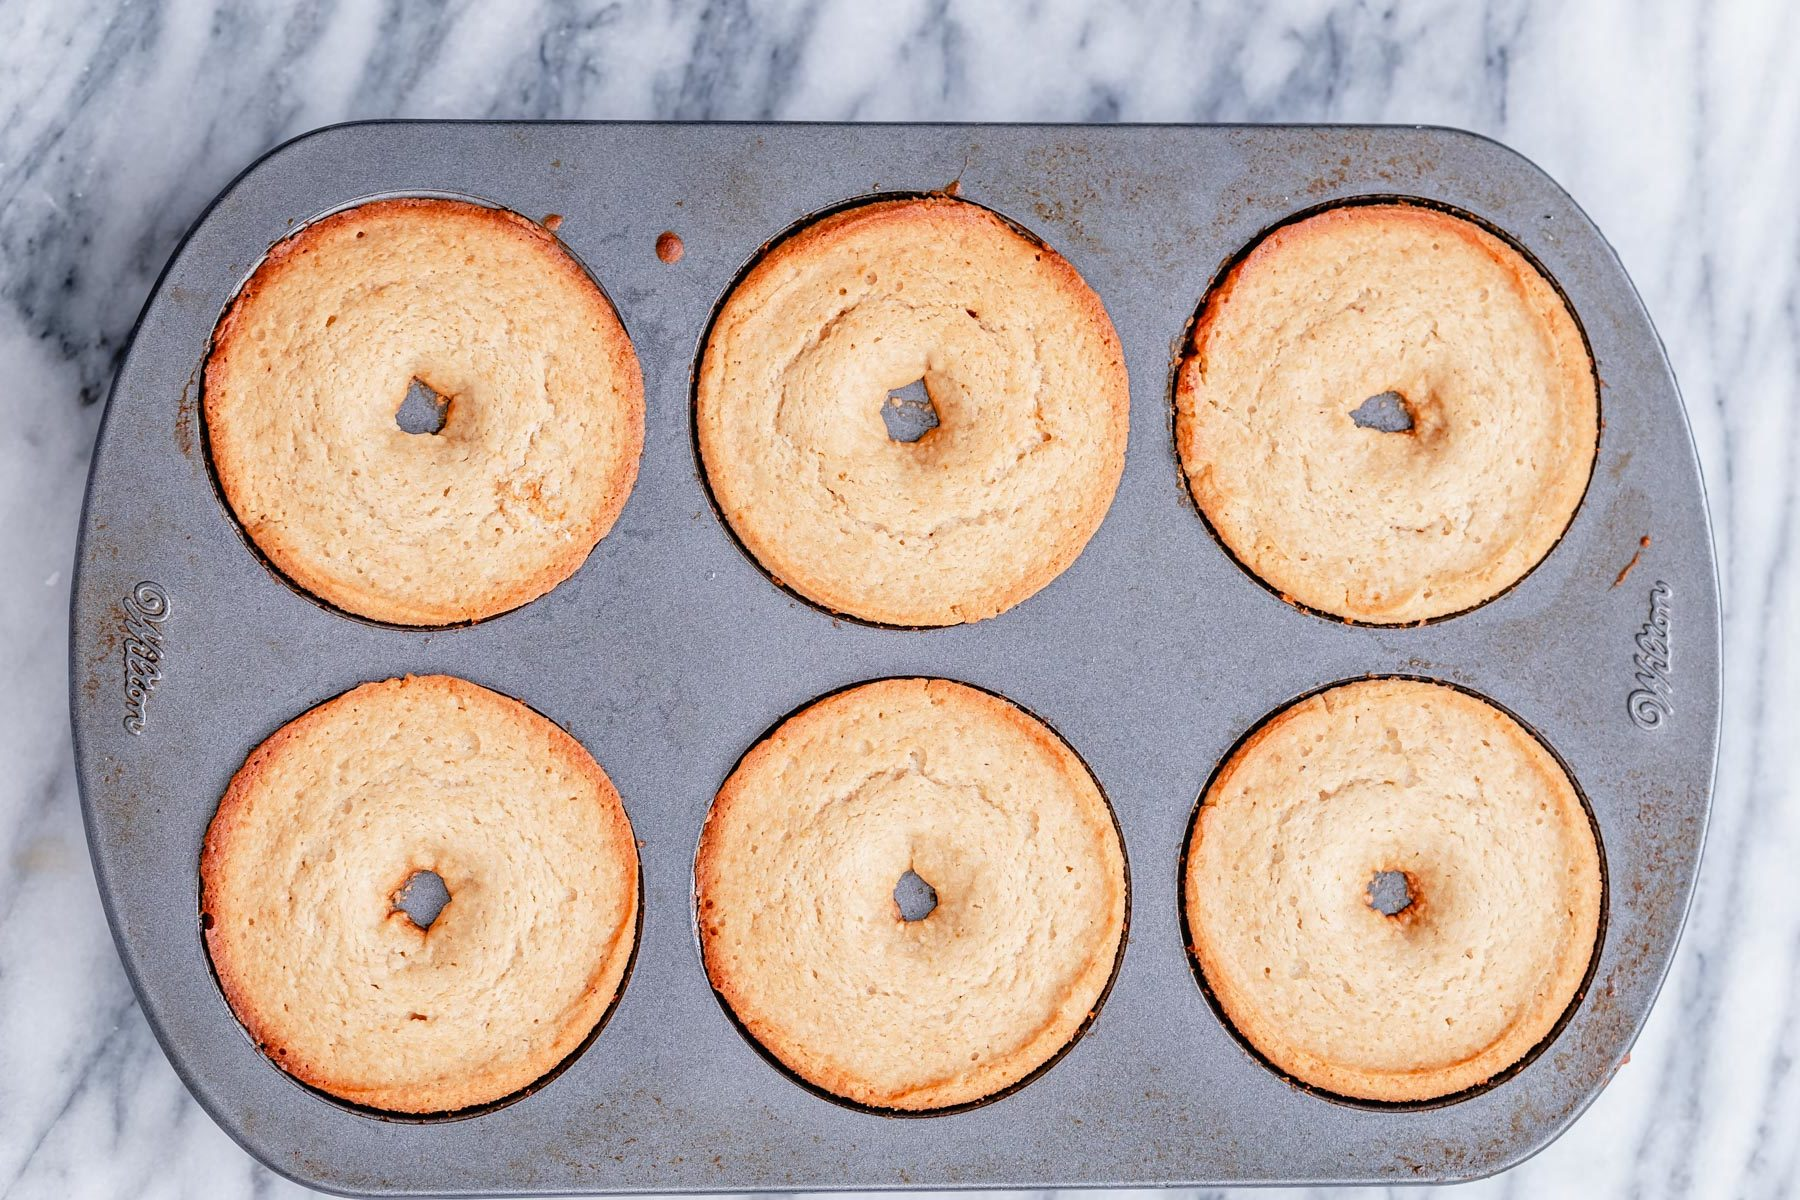 freshly baked glutenfree donuts in a baking pan